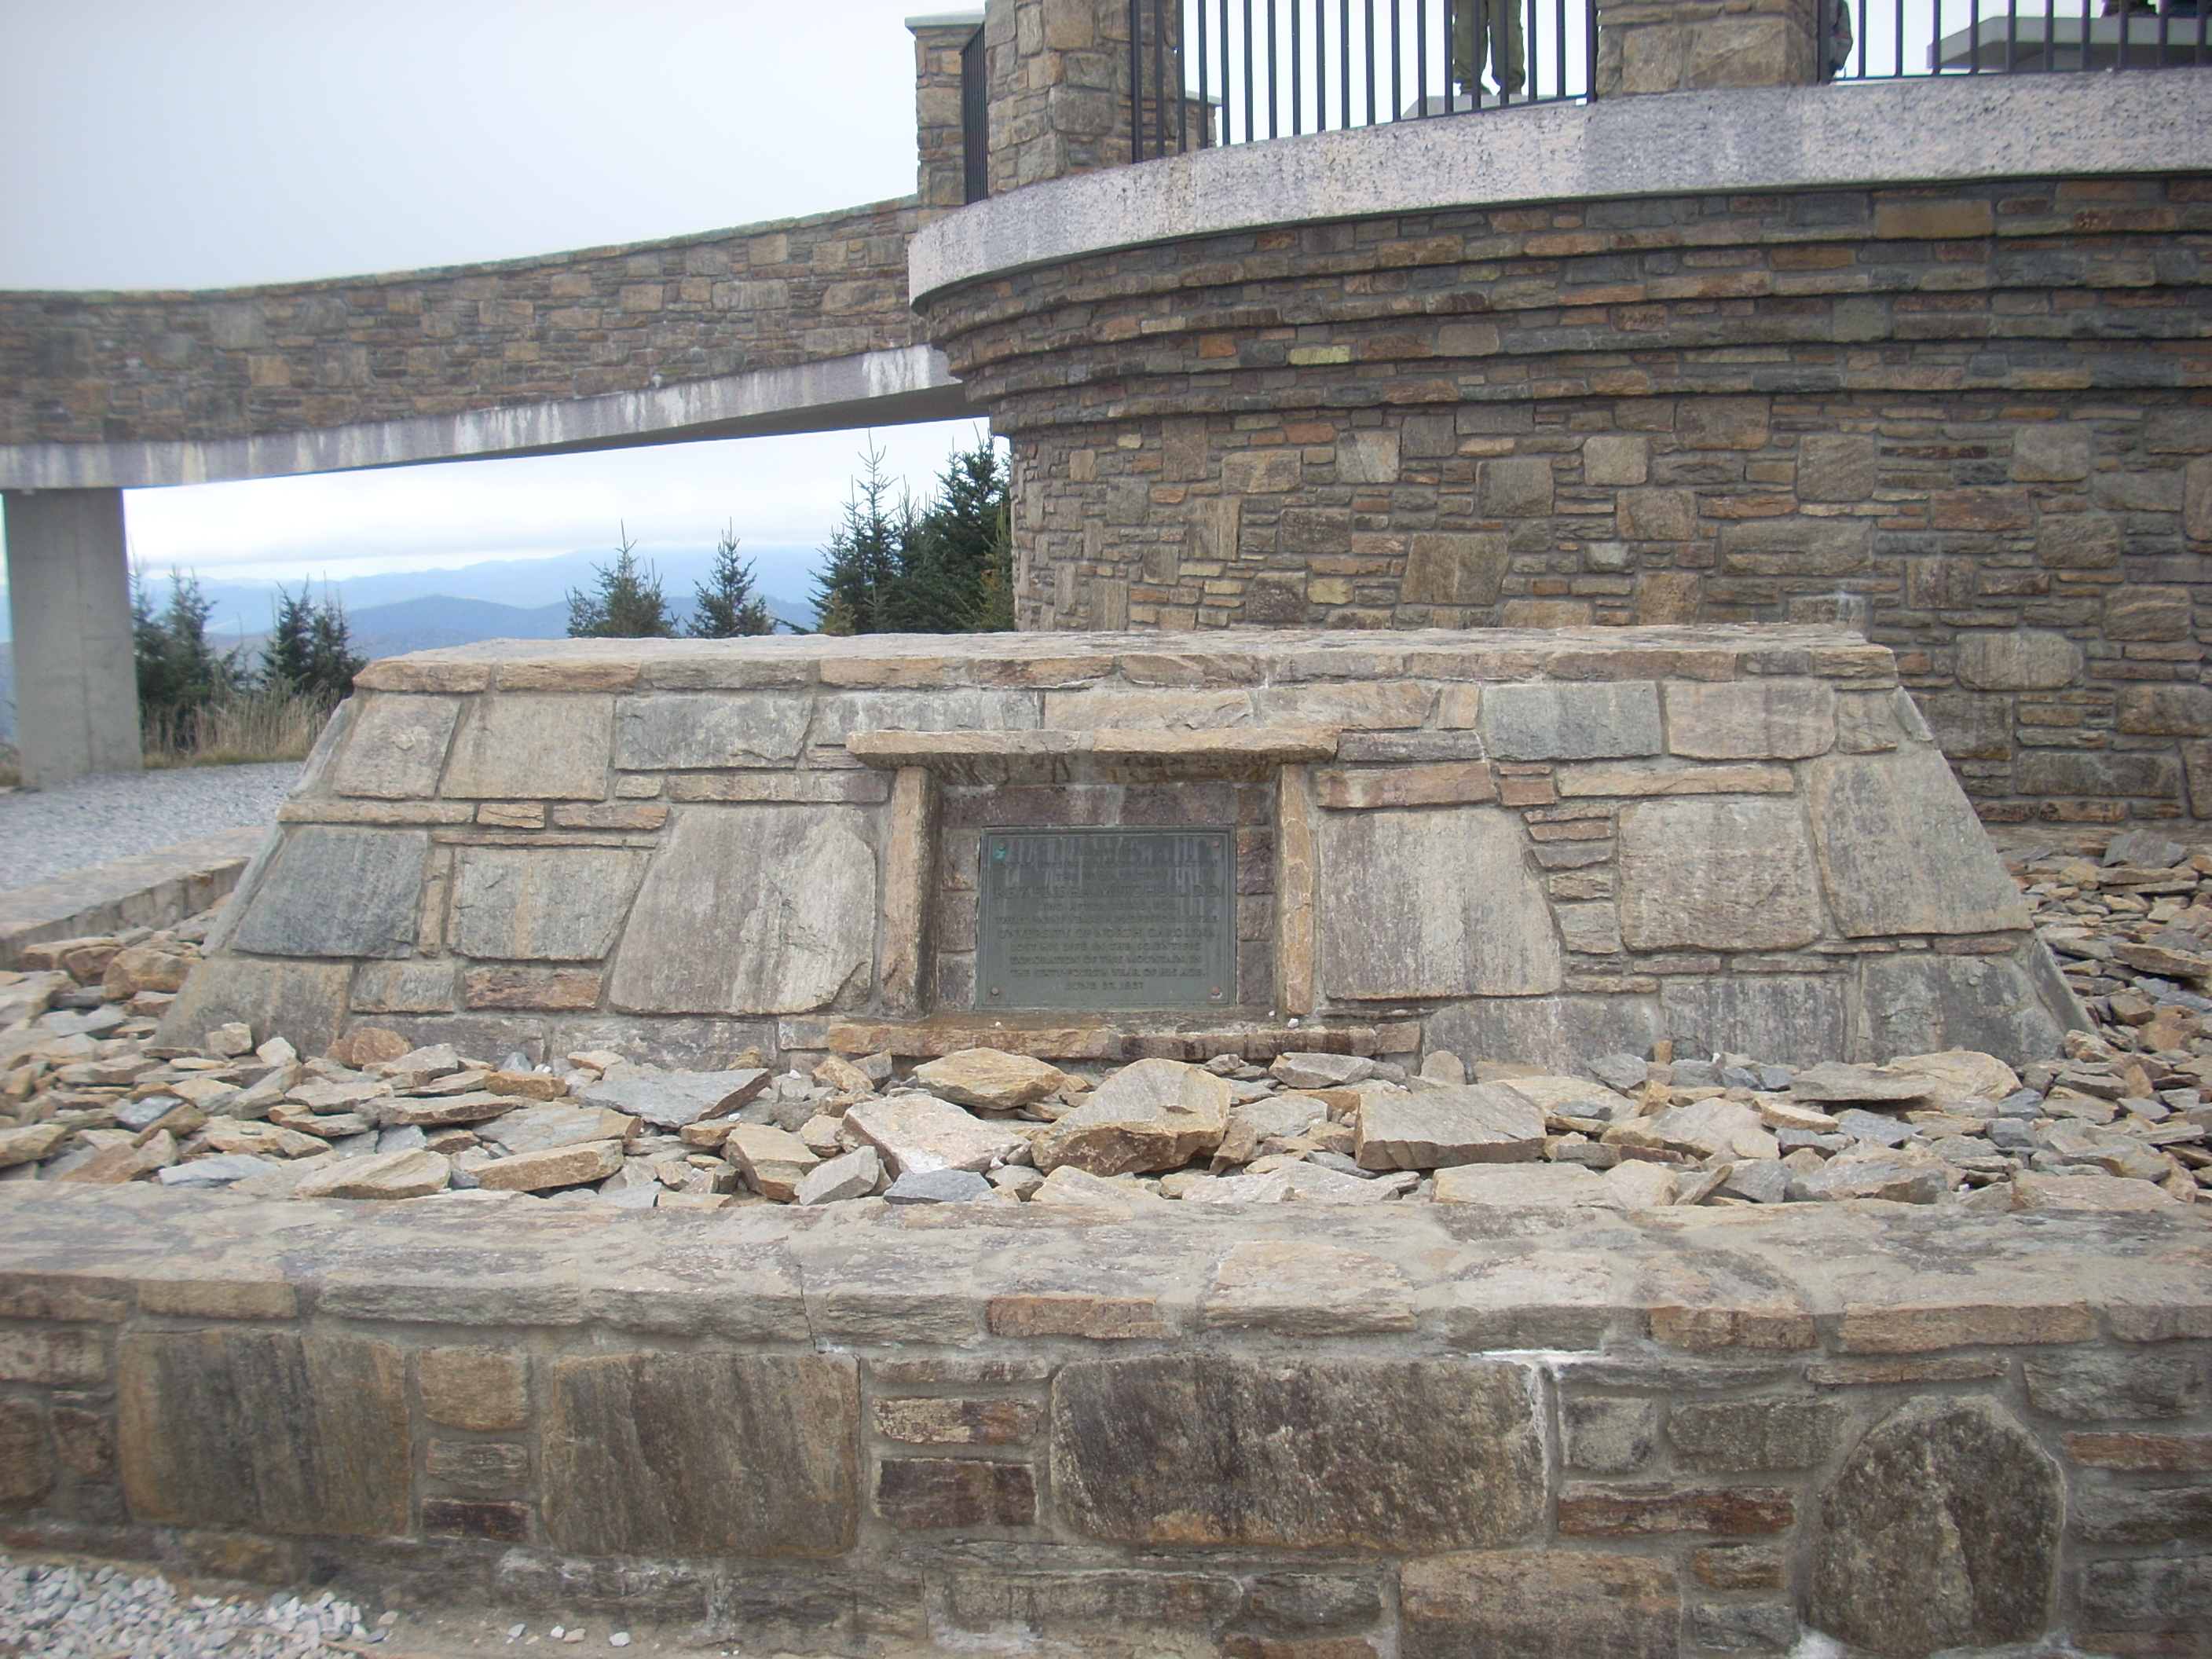 File:Elisha Mitchell\'s tomb, Mount Mitchell (Yancey County, Northbalance of yancey county